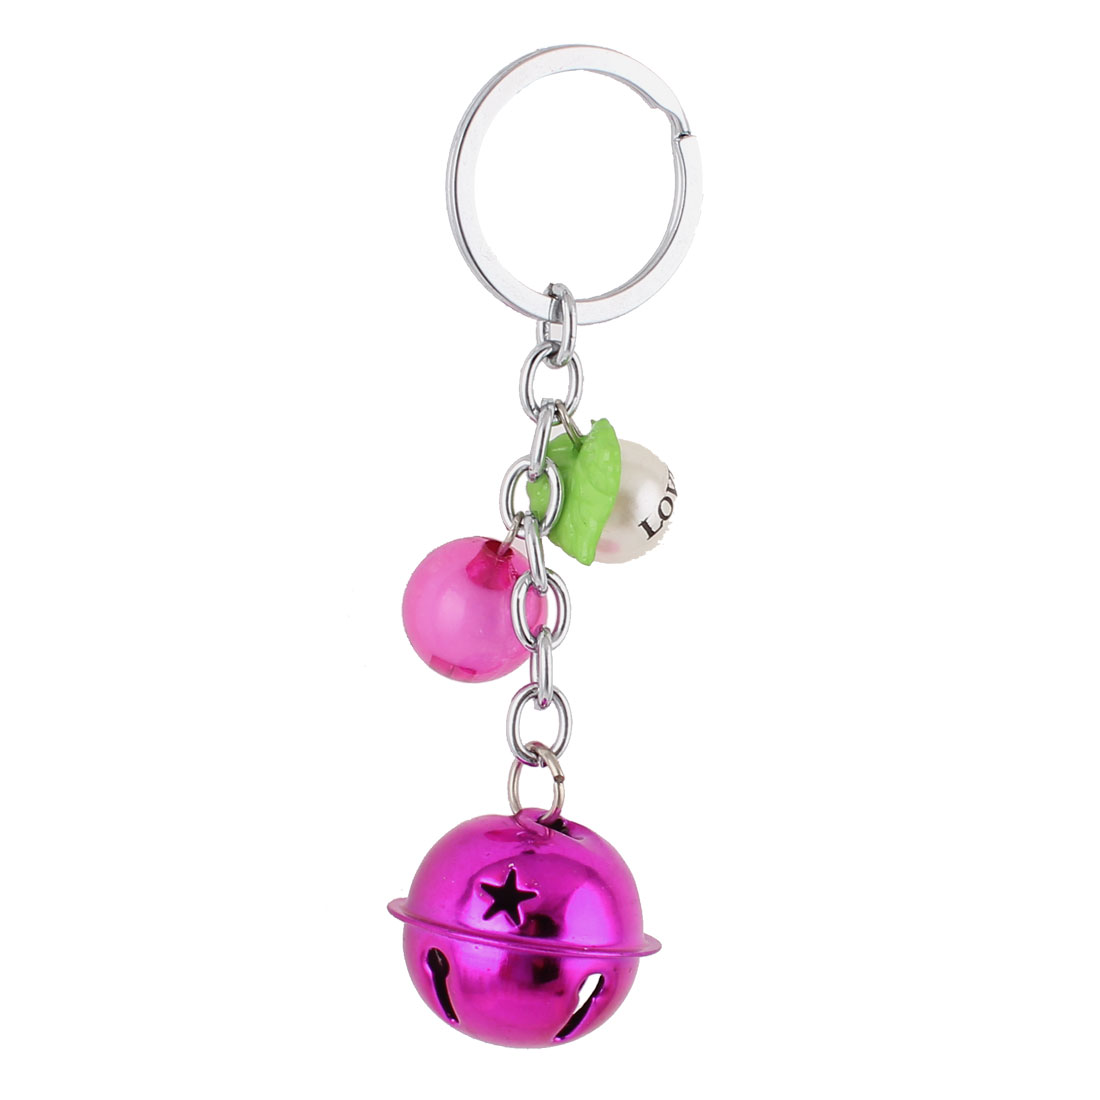 Bells Beads Detail Split Ring Keyring Keychain Key Holder Bag Purse Decor Fuchsia White